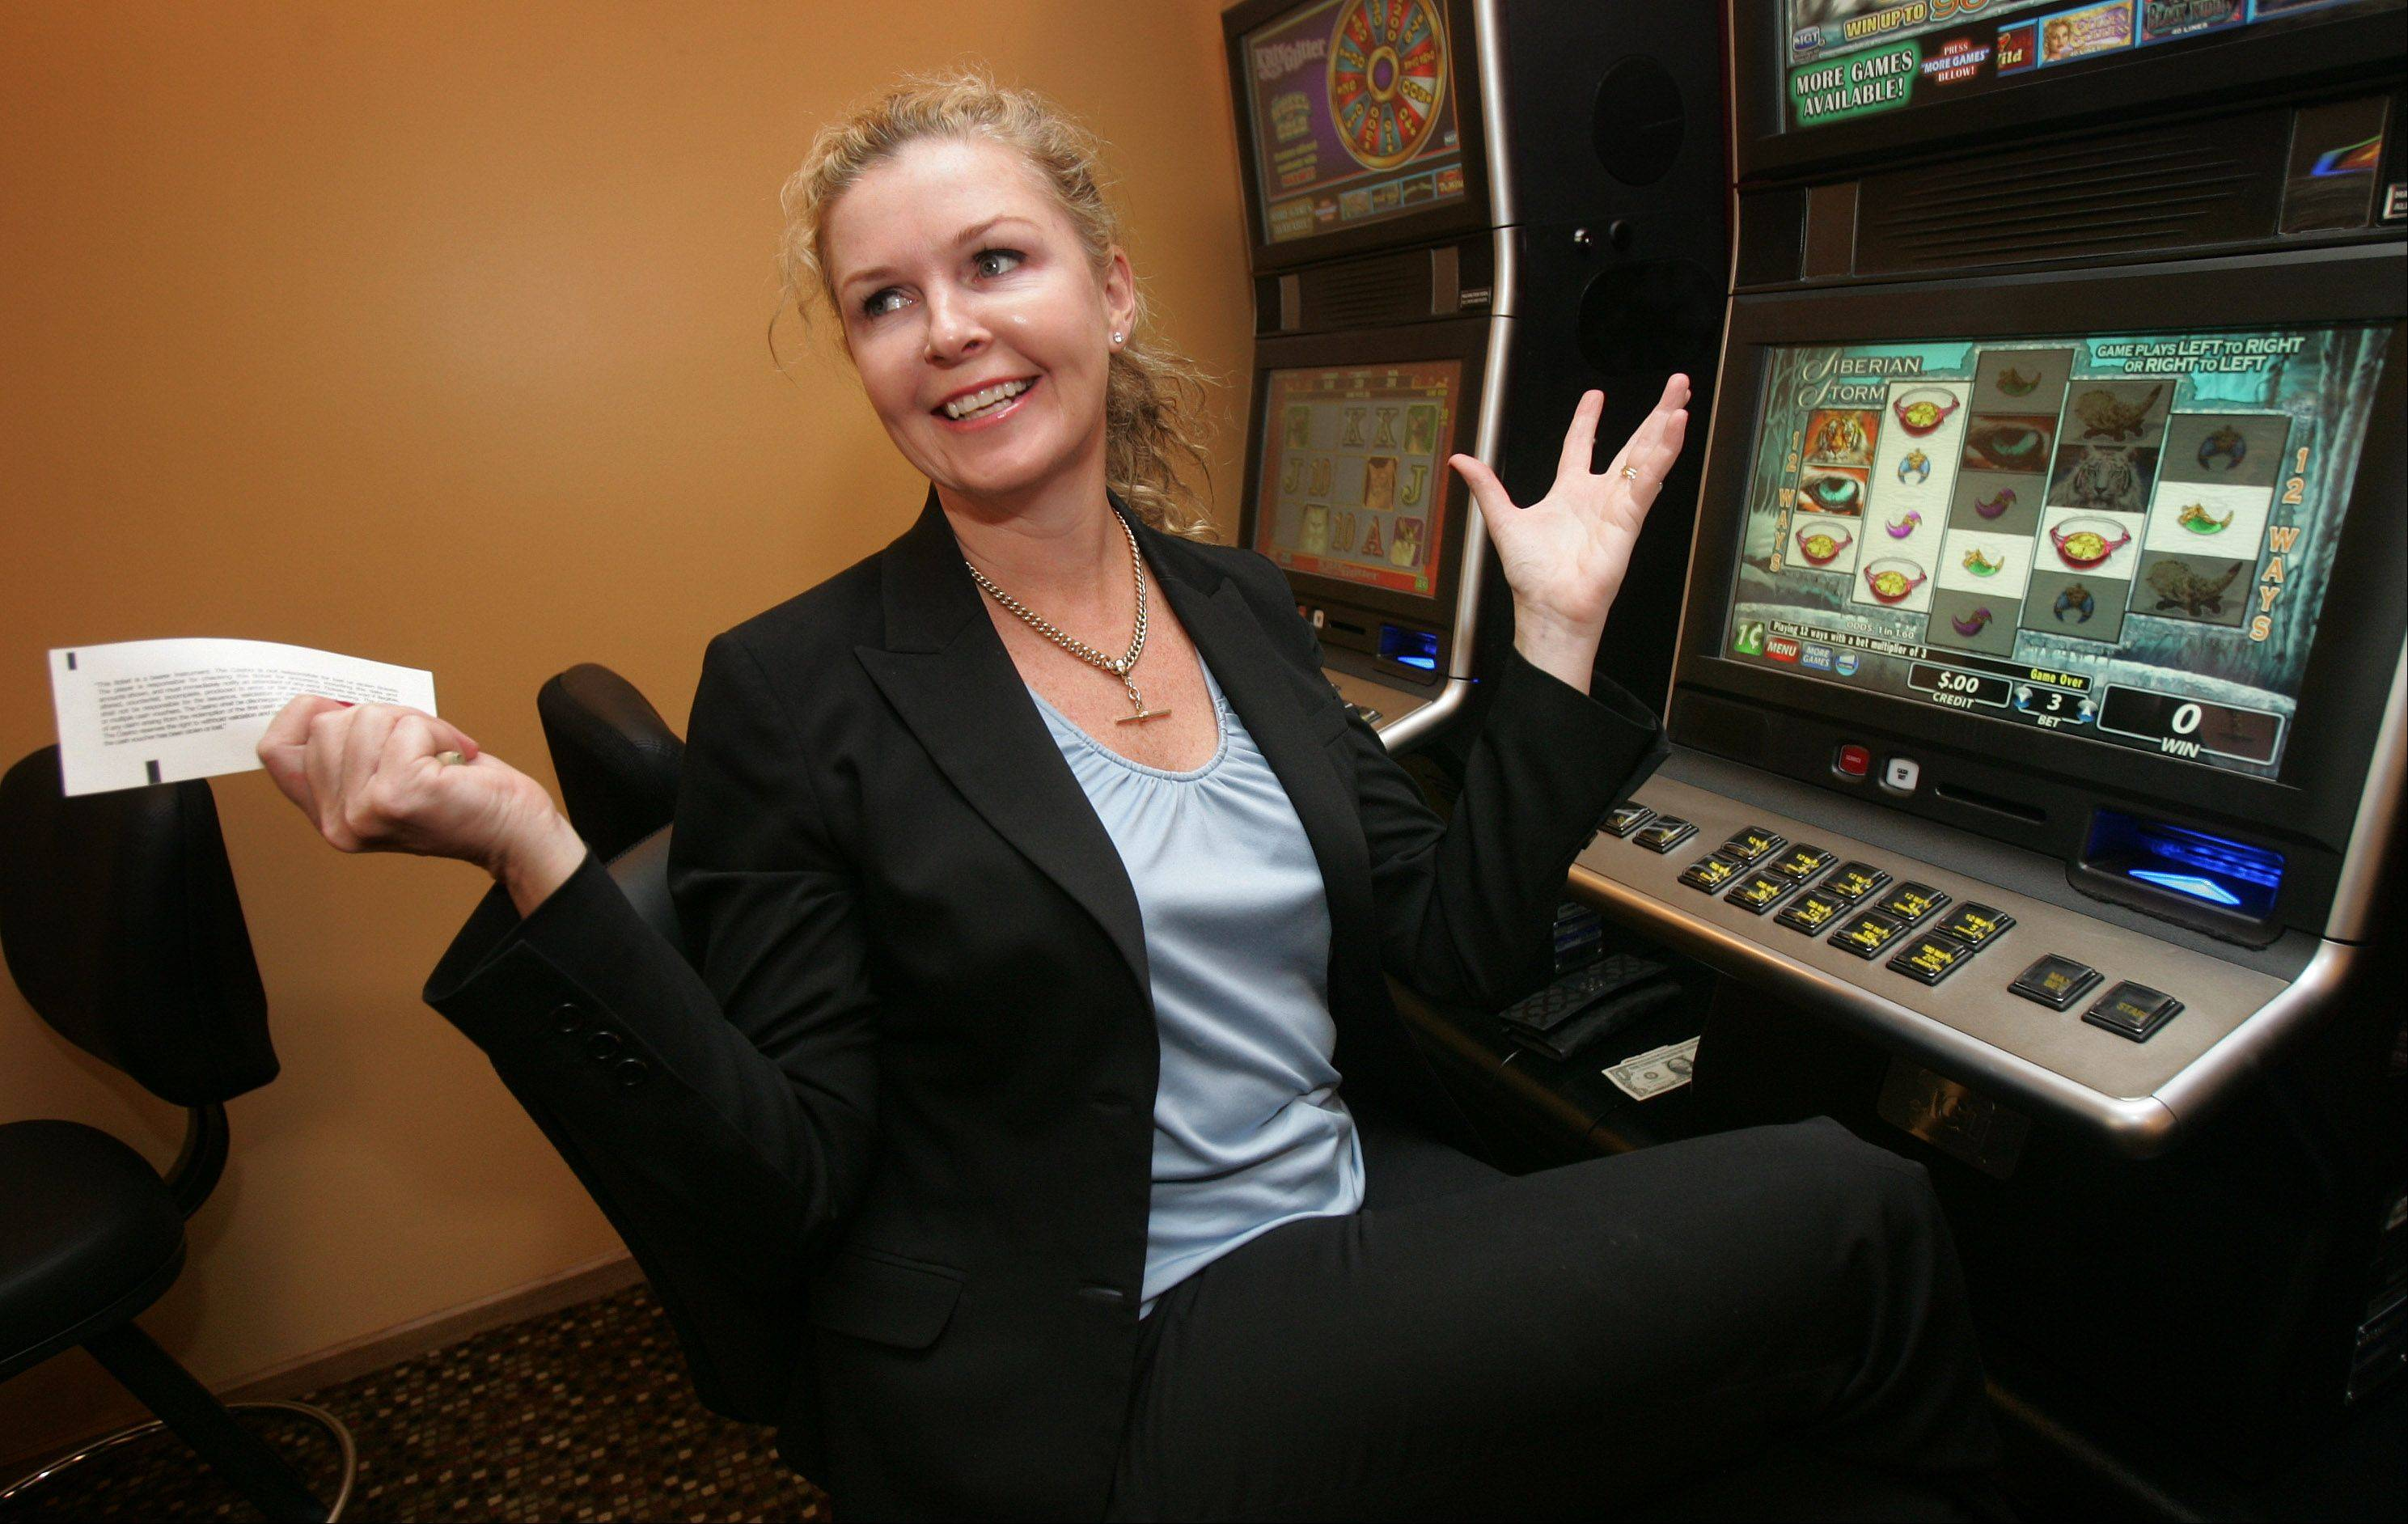 Lynne Morris, CEO of Morris Gaming, demonstrates the new videopoker machines Wednesday at Rosati's Pizza in Lakemoor.